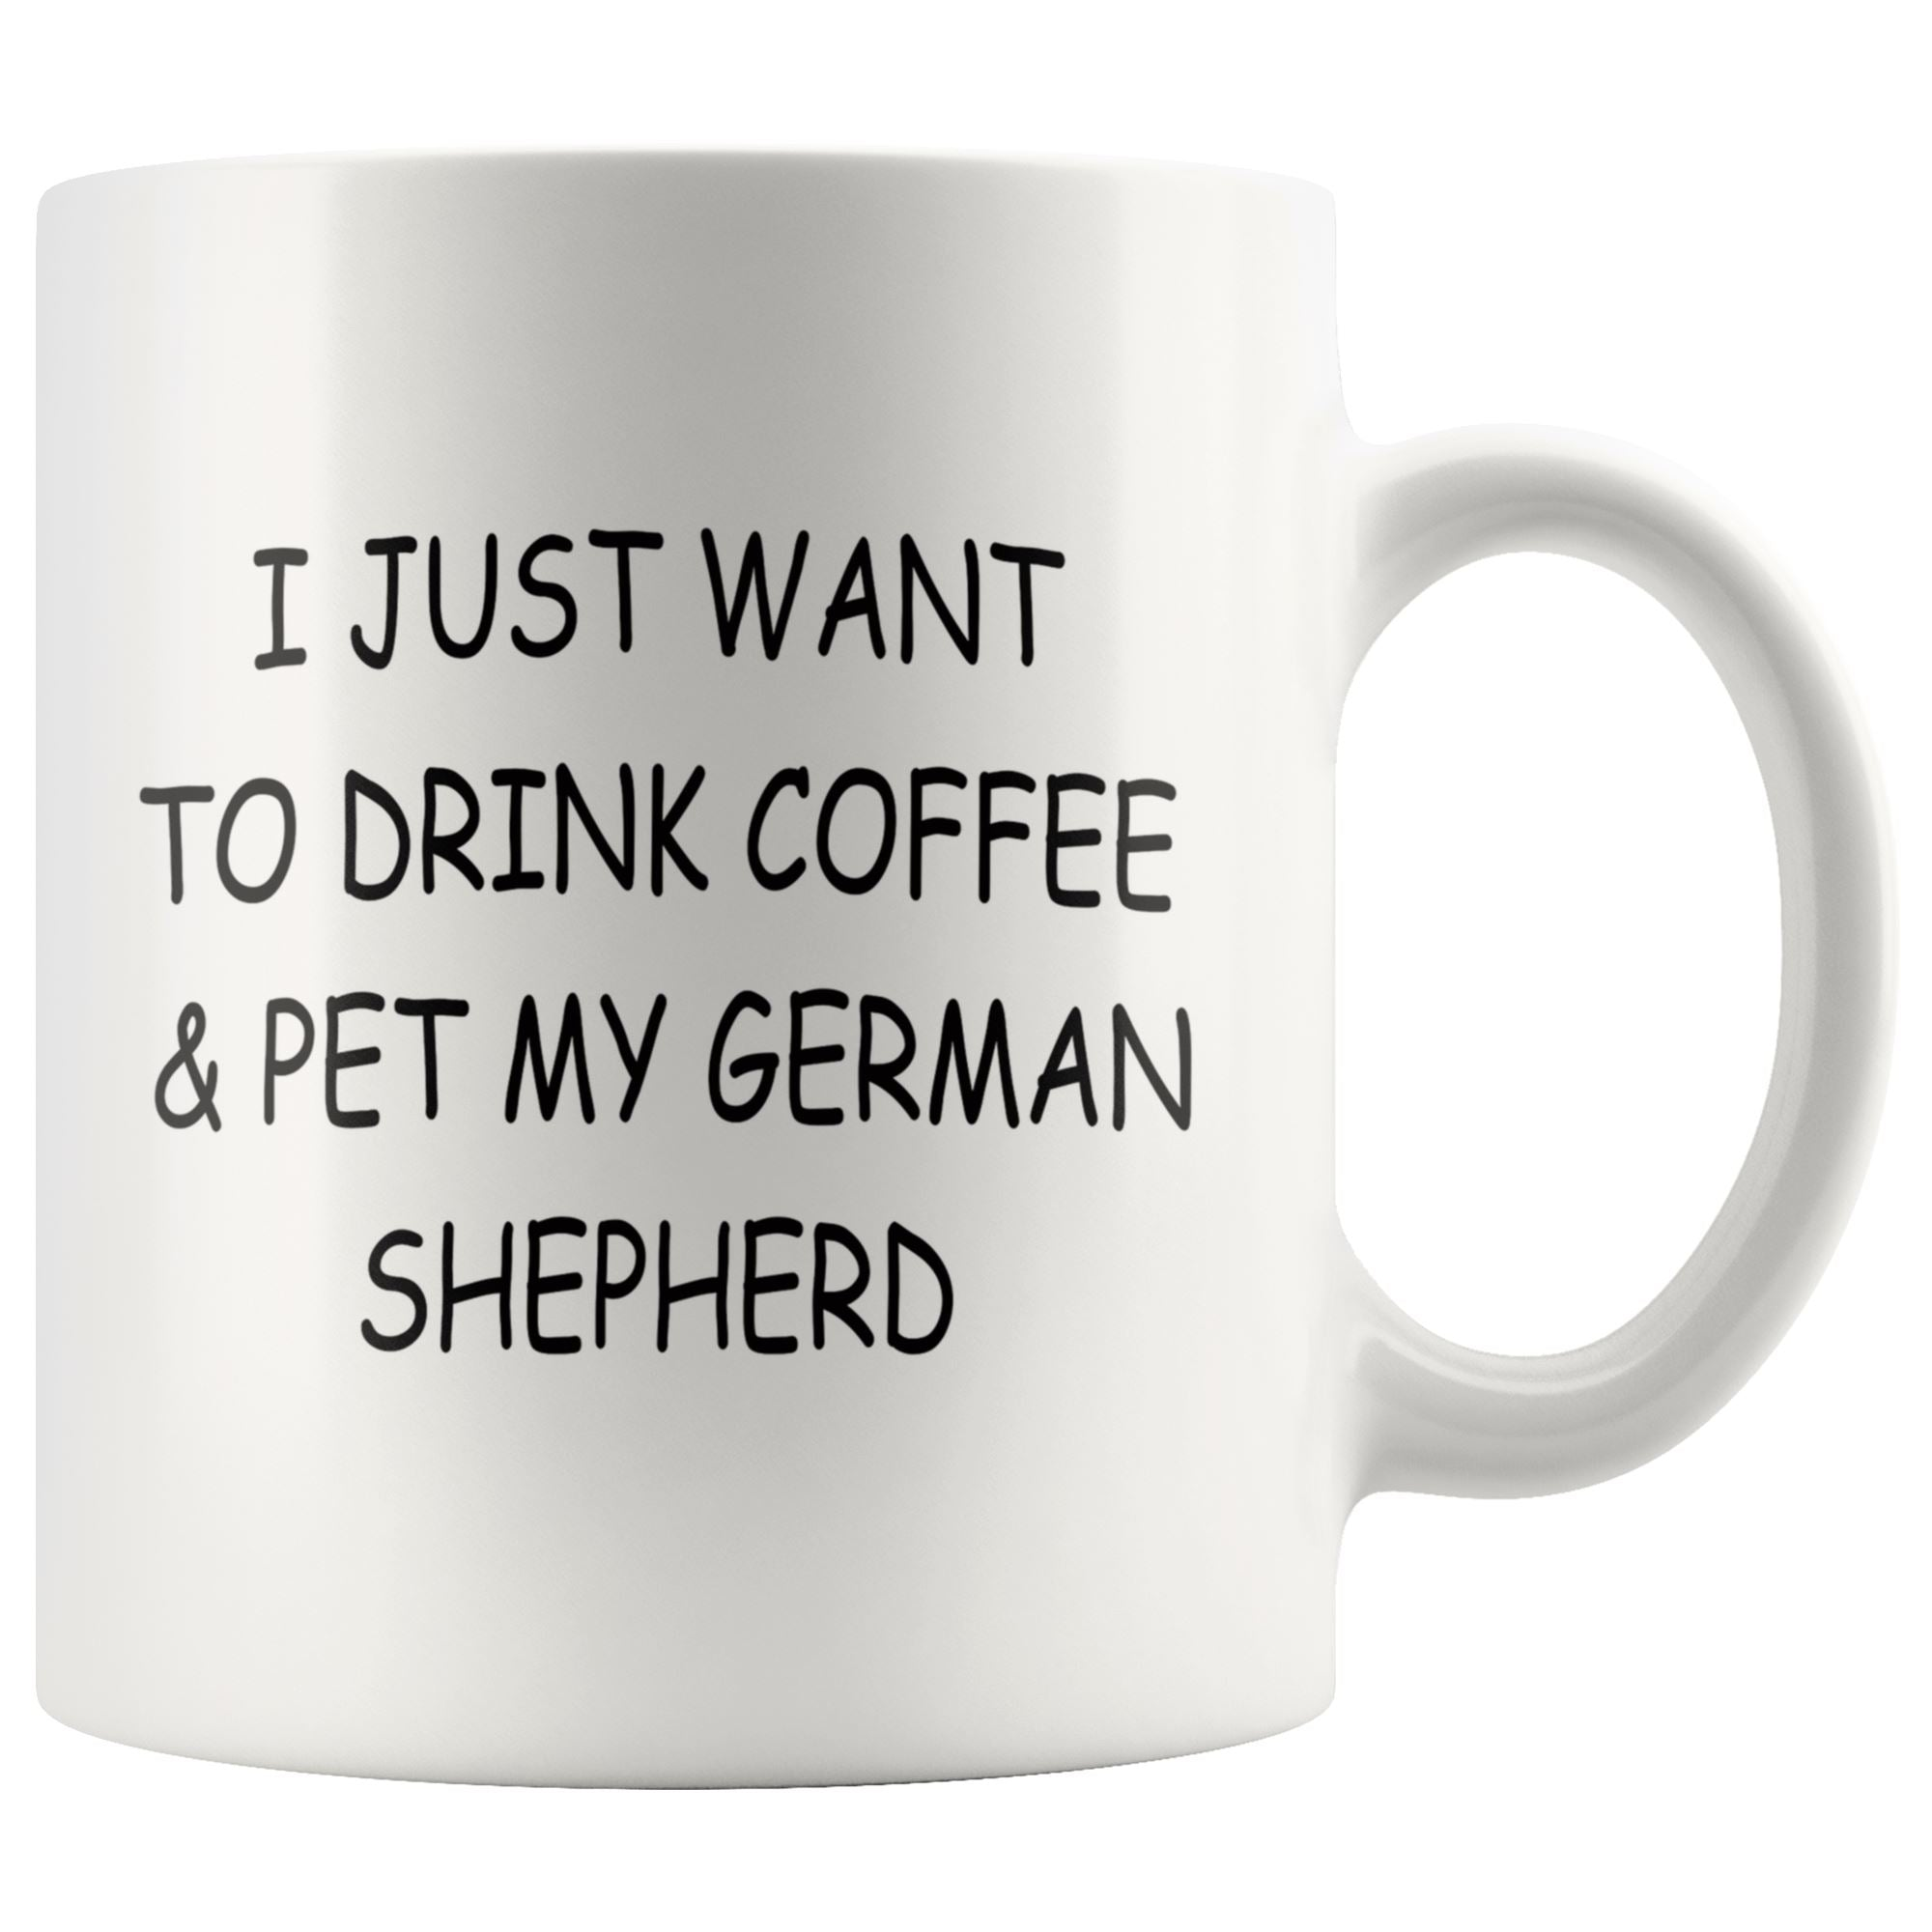 German Shepherd Mug Drinkware teelaunch 11oz Mug